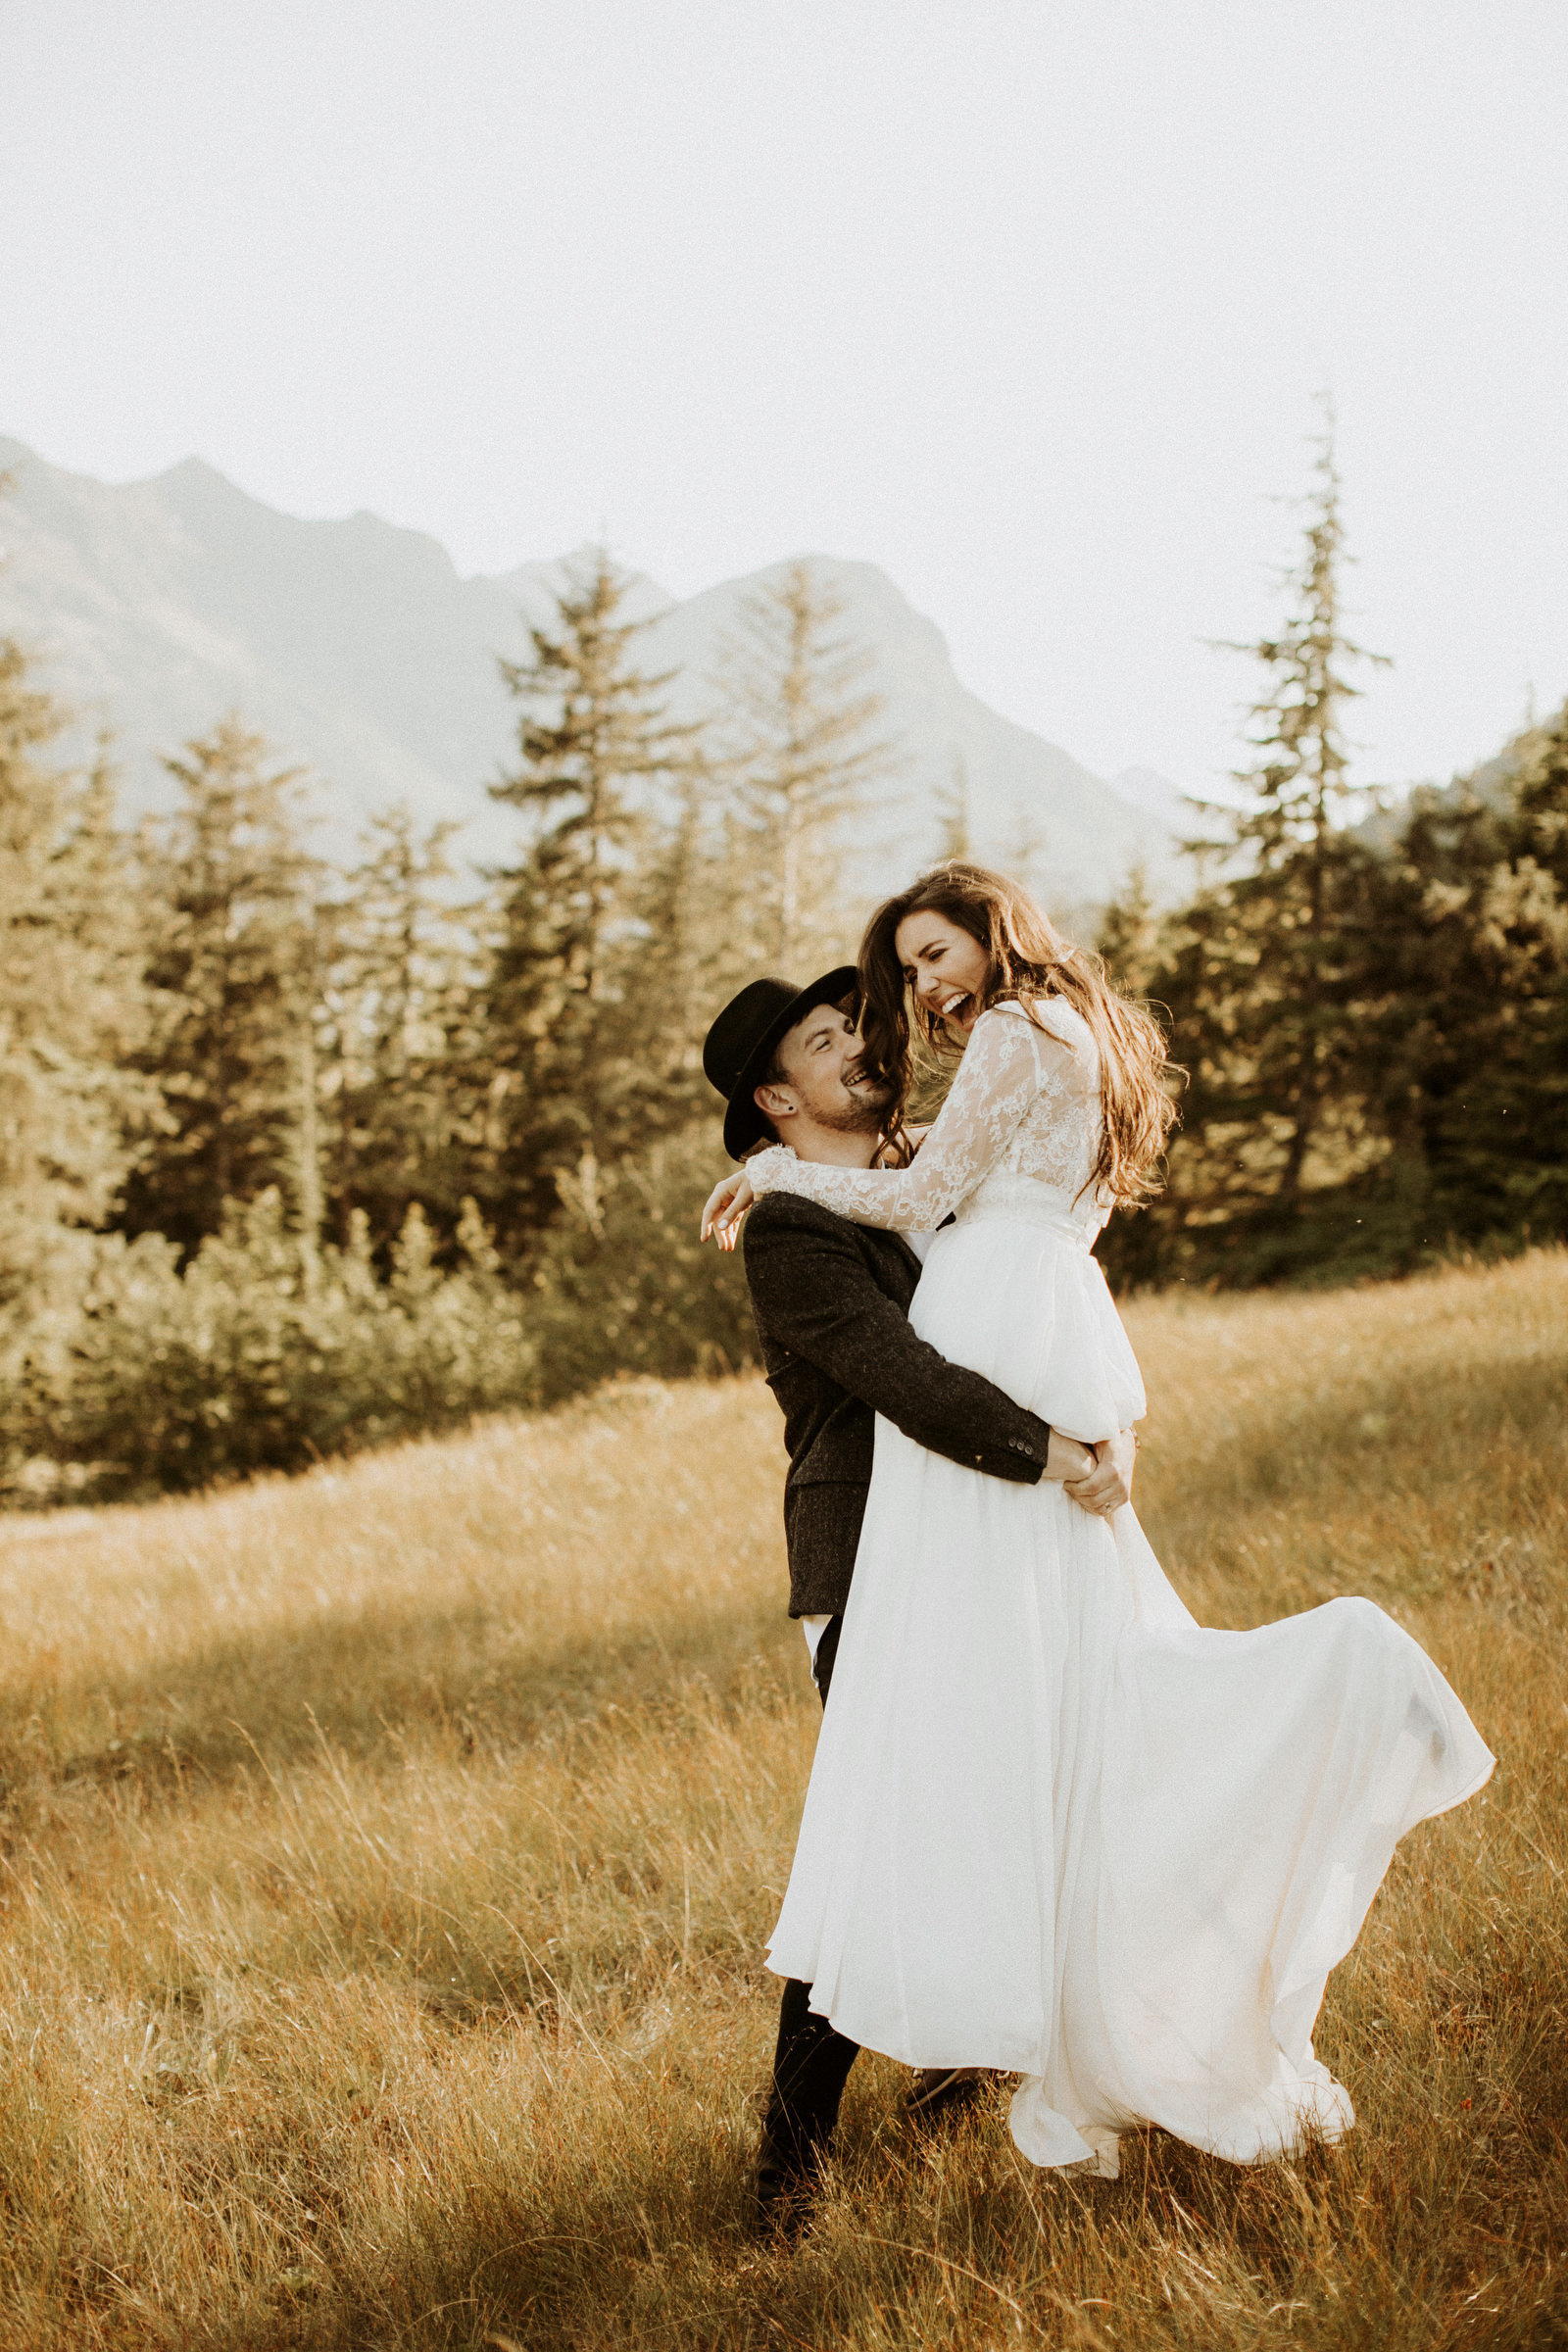 athena-and-camron-alaska-elopement-wedding-inspiration-india-earl-athena-grace-glacier-lagoon-wedding47